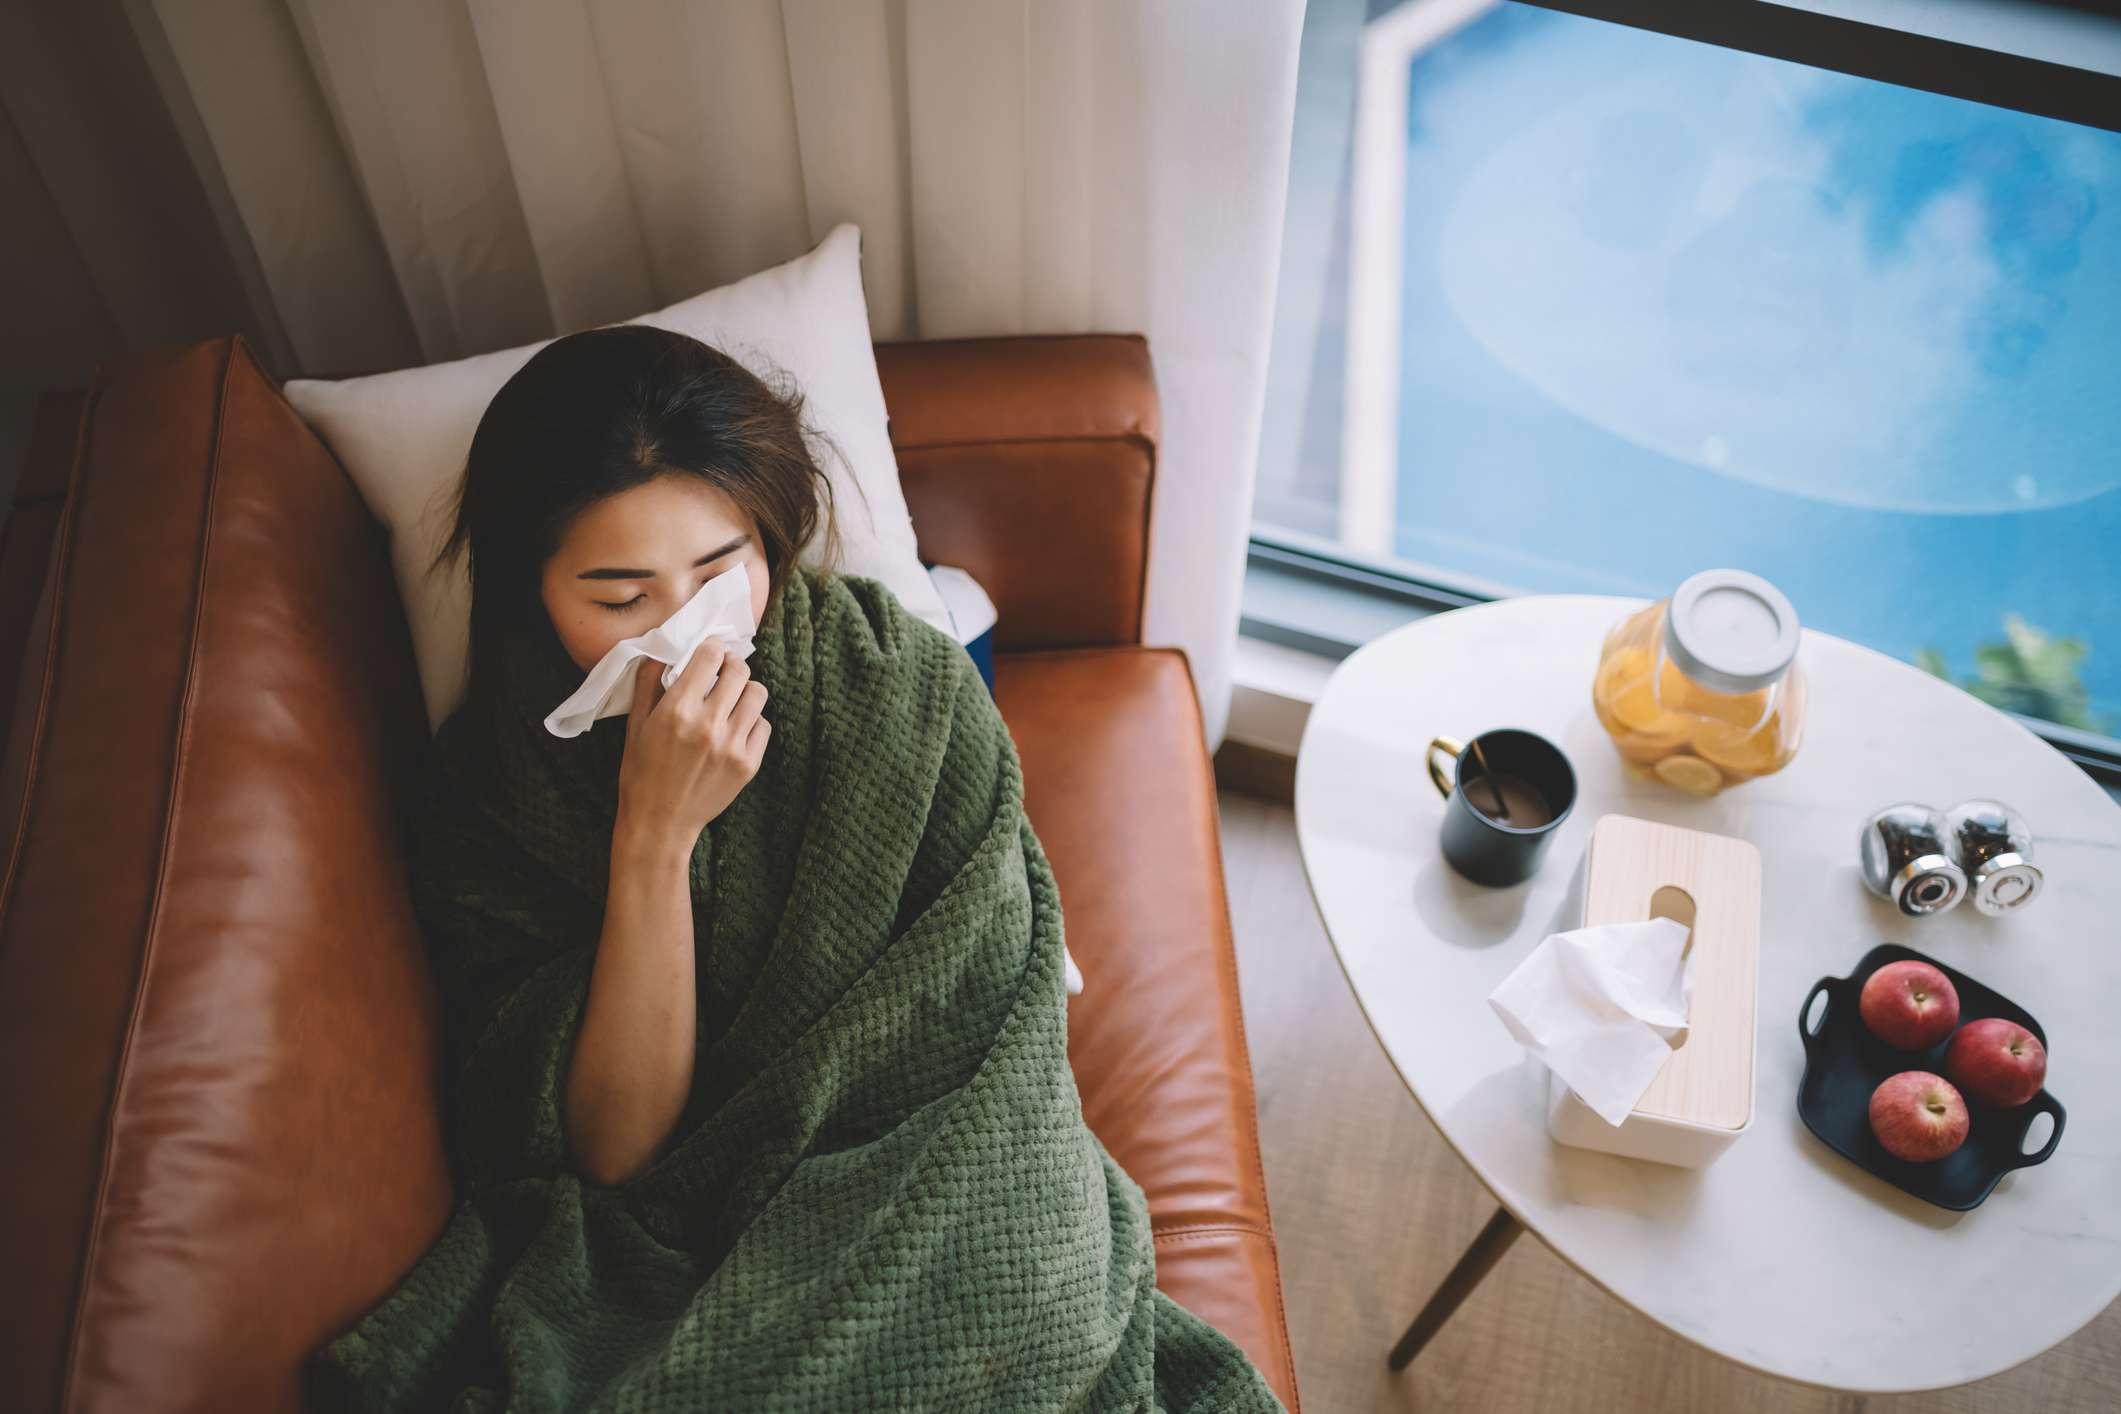 sick woman lying on couch blowing nose